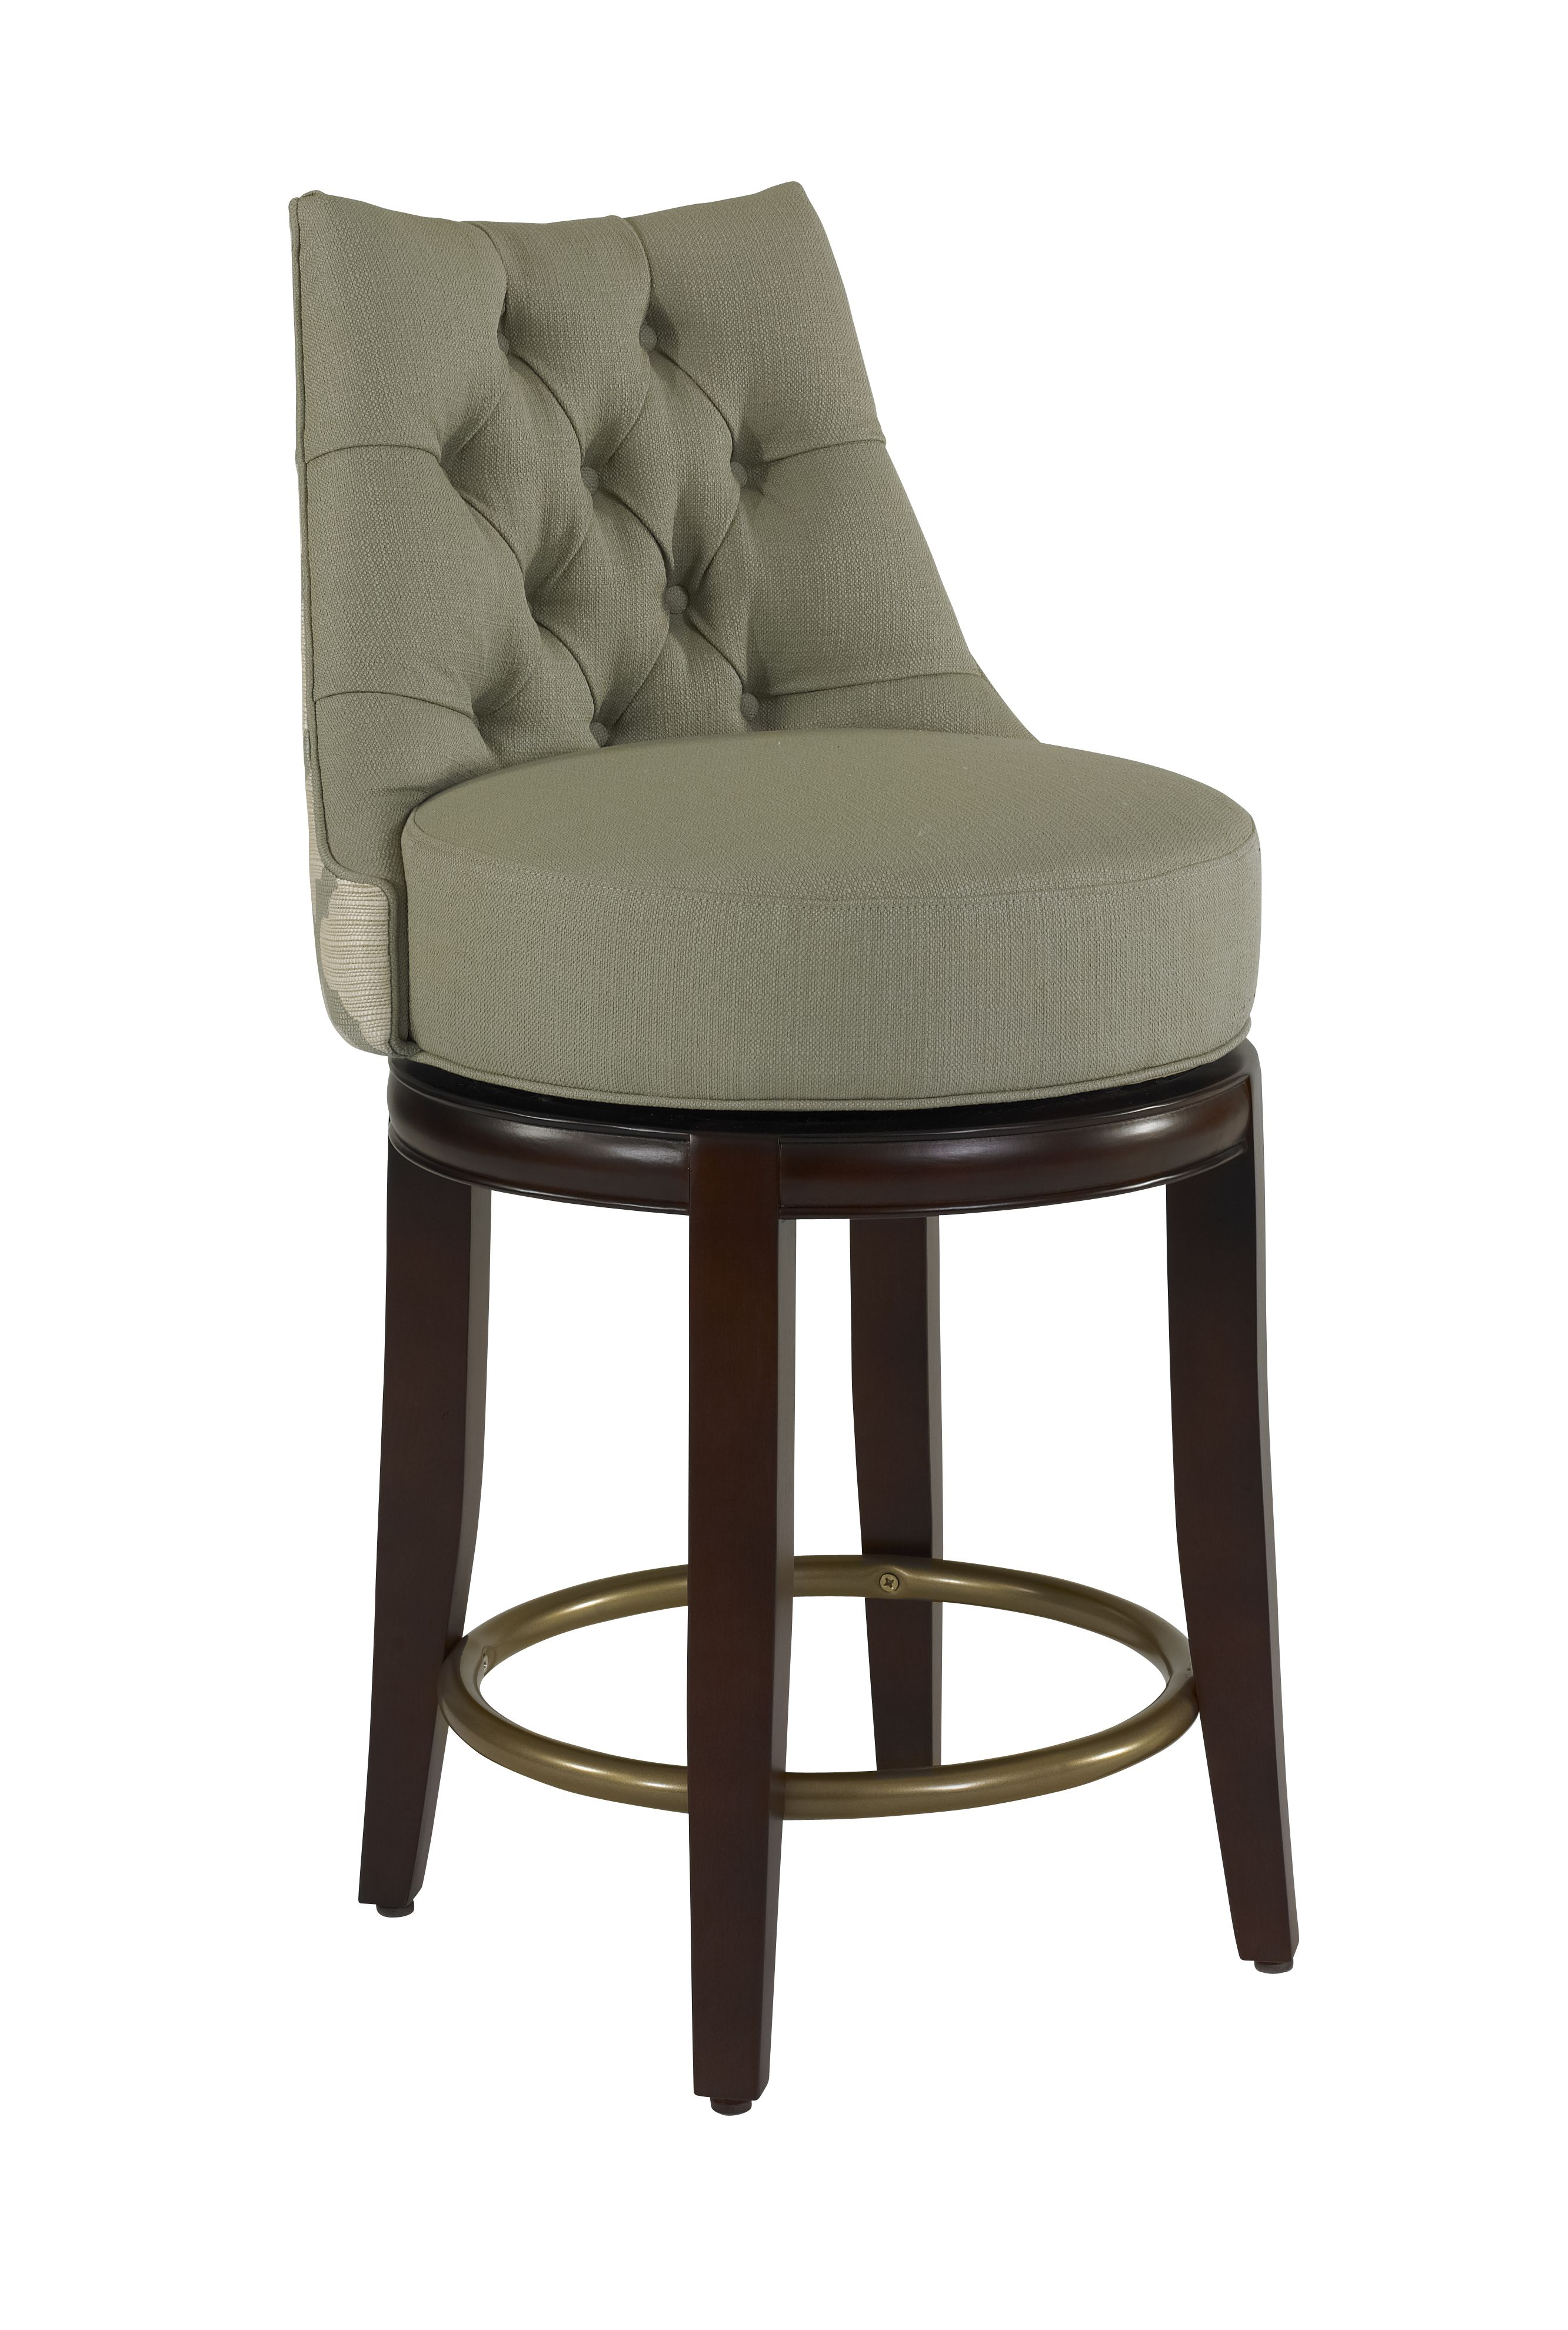 Image Result For Bar Stools Counter Height Bar Stools Stools